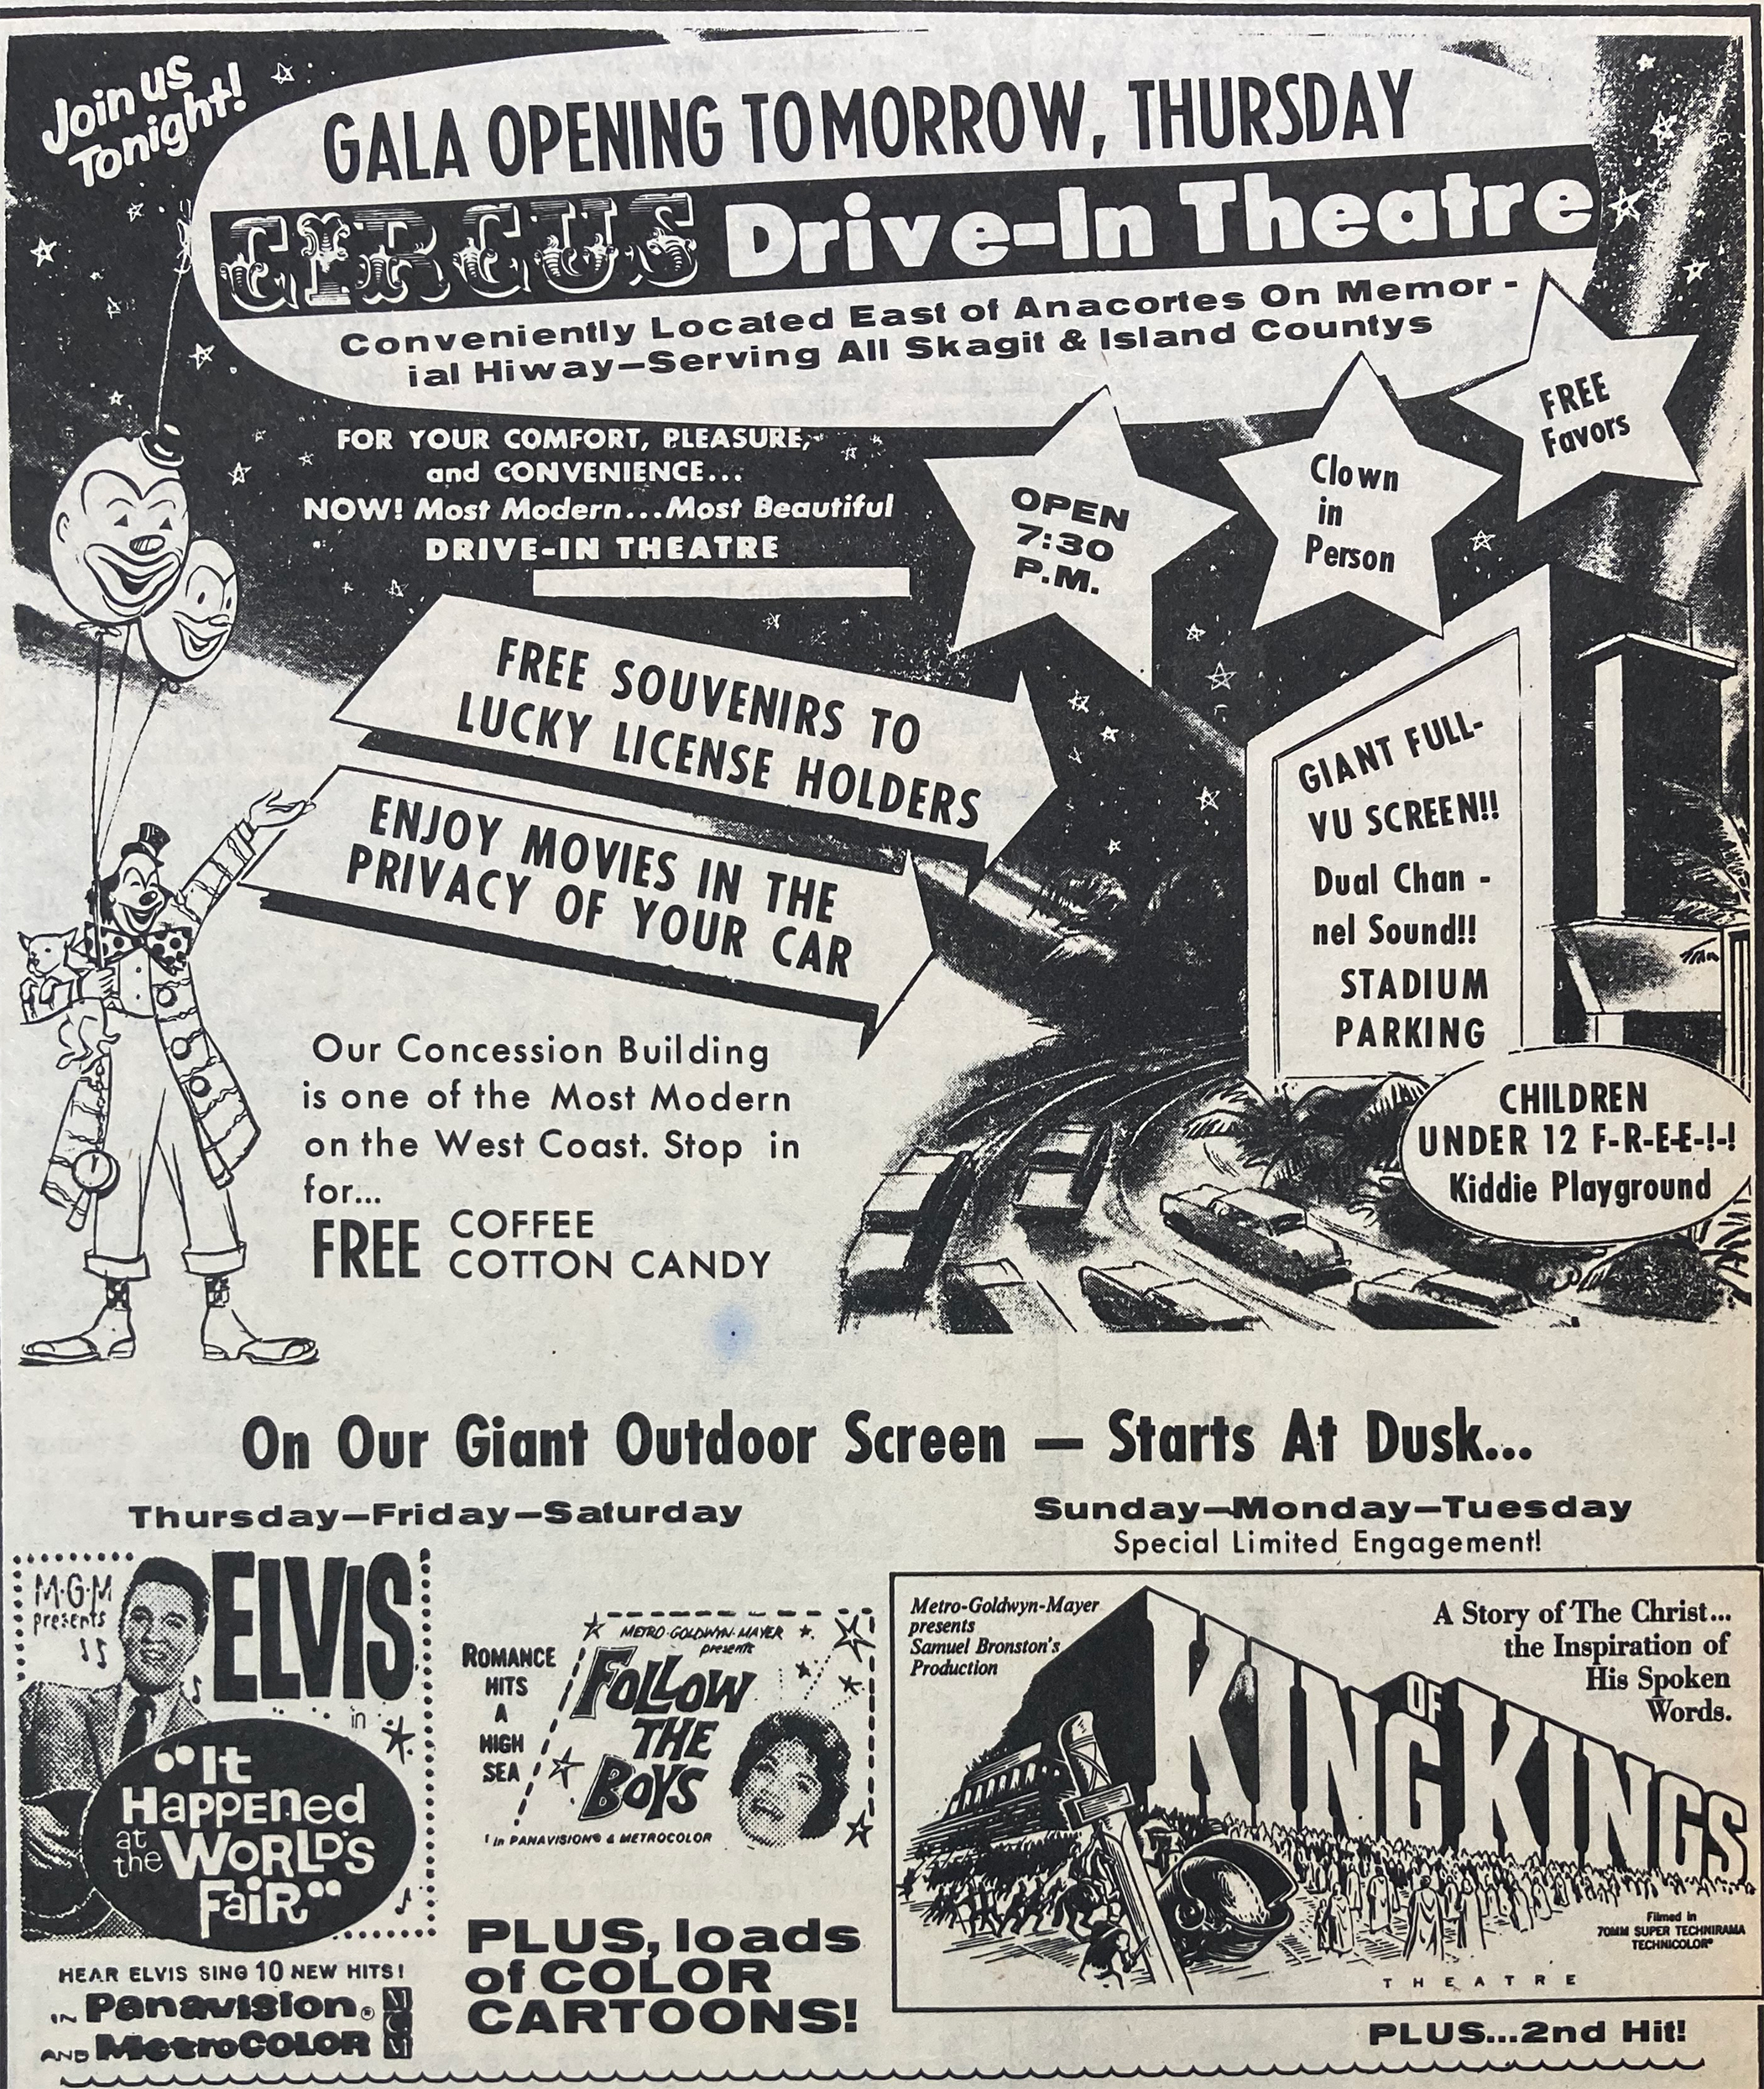 Circus Drive-in 1963 opening ad June V2